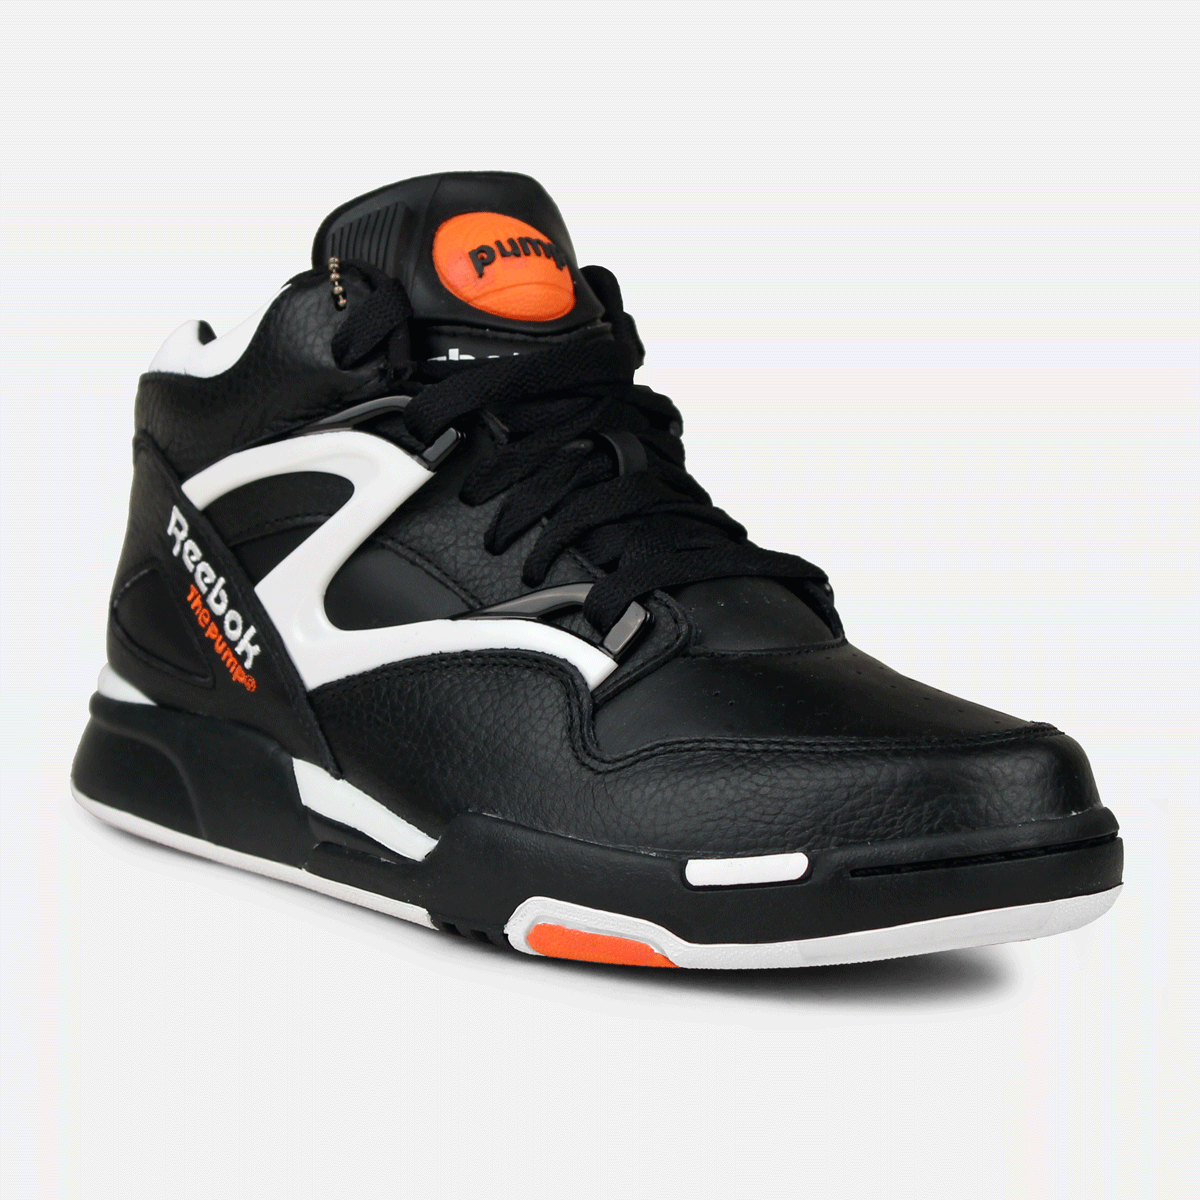 reebok pump une histoire qui ne manque pas d air jumper zone. Black Bedroom Furniture Sets. Home Design Ideas